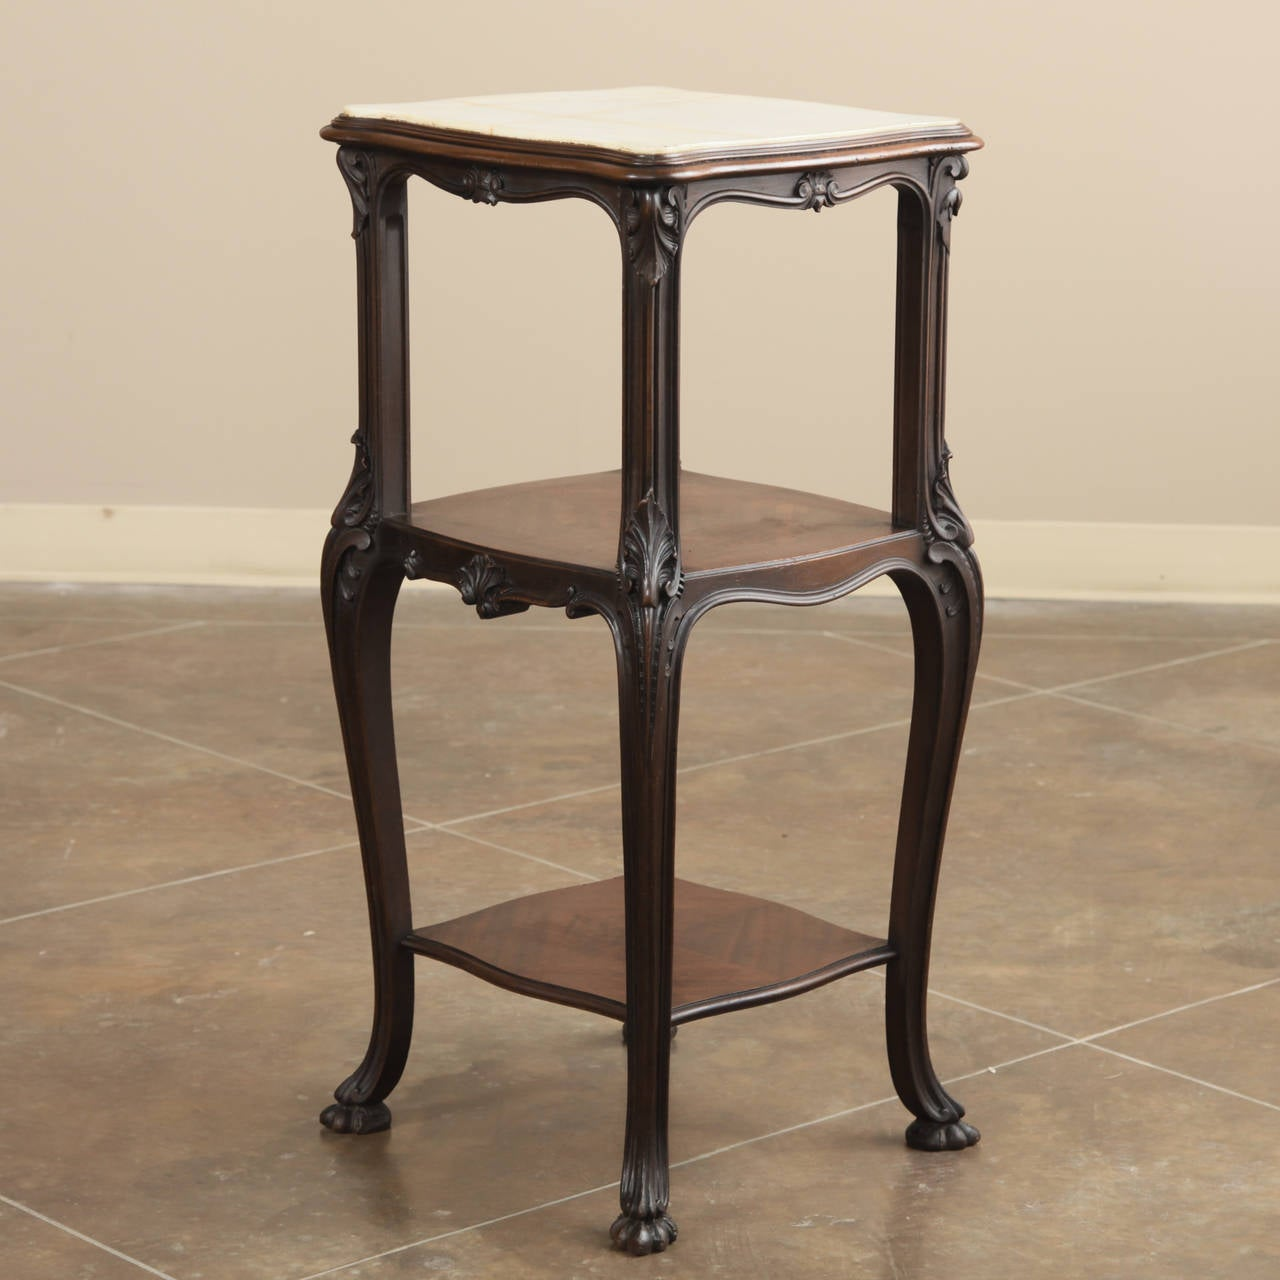 Handcrafted from exotic imported rosewood and fitted with a contoured onyx top, this stunning antique 19th century French nightstand can easily double as a lamp table, adding flair and style to any room! The three-tiered design with its subtly yet